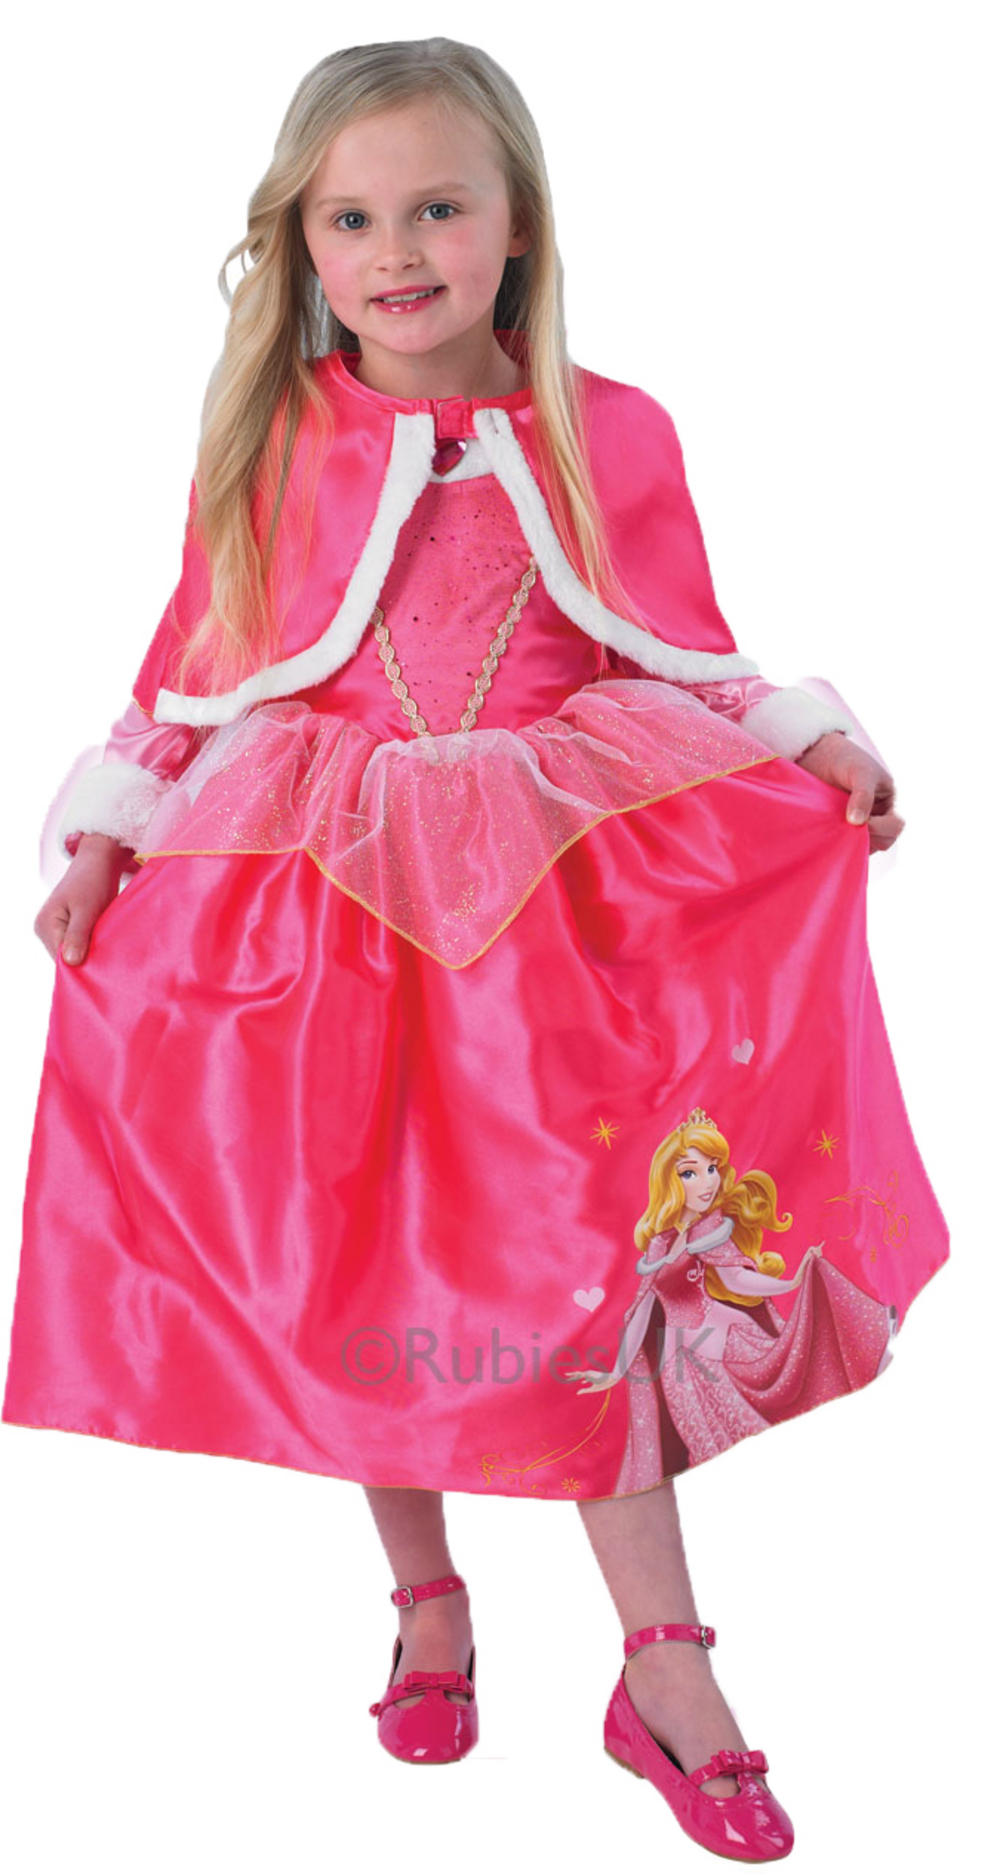 926cab746c0 Disney Princess Sleeping Beauty Costume